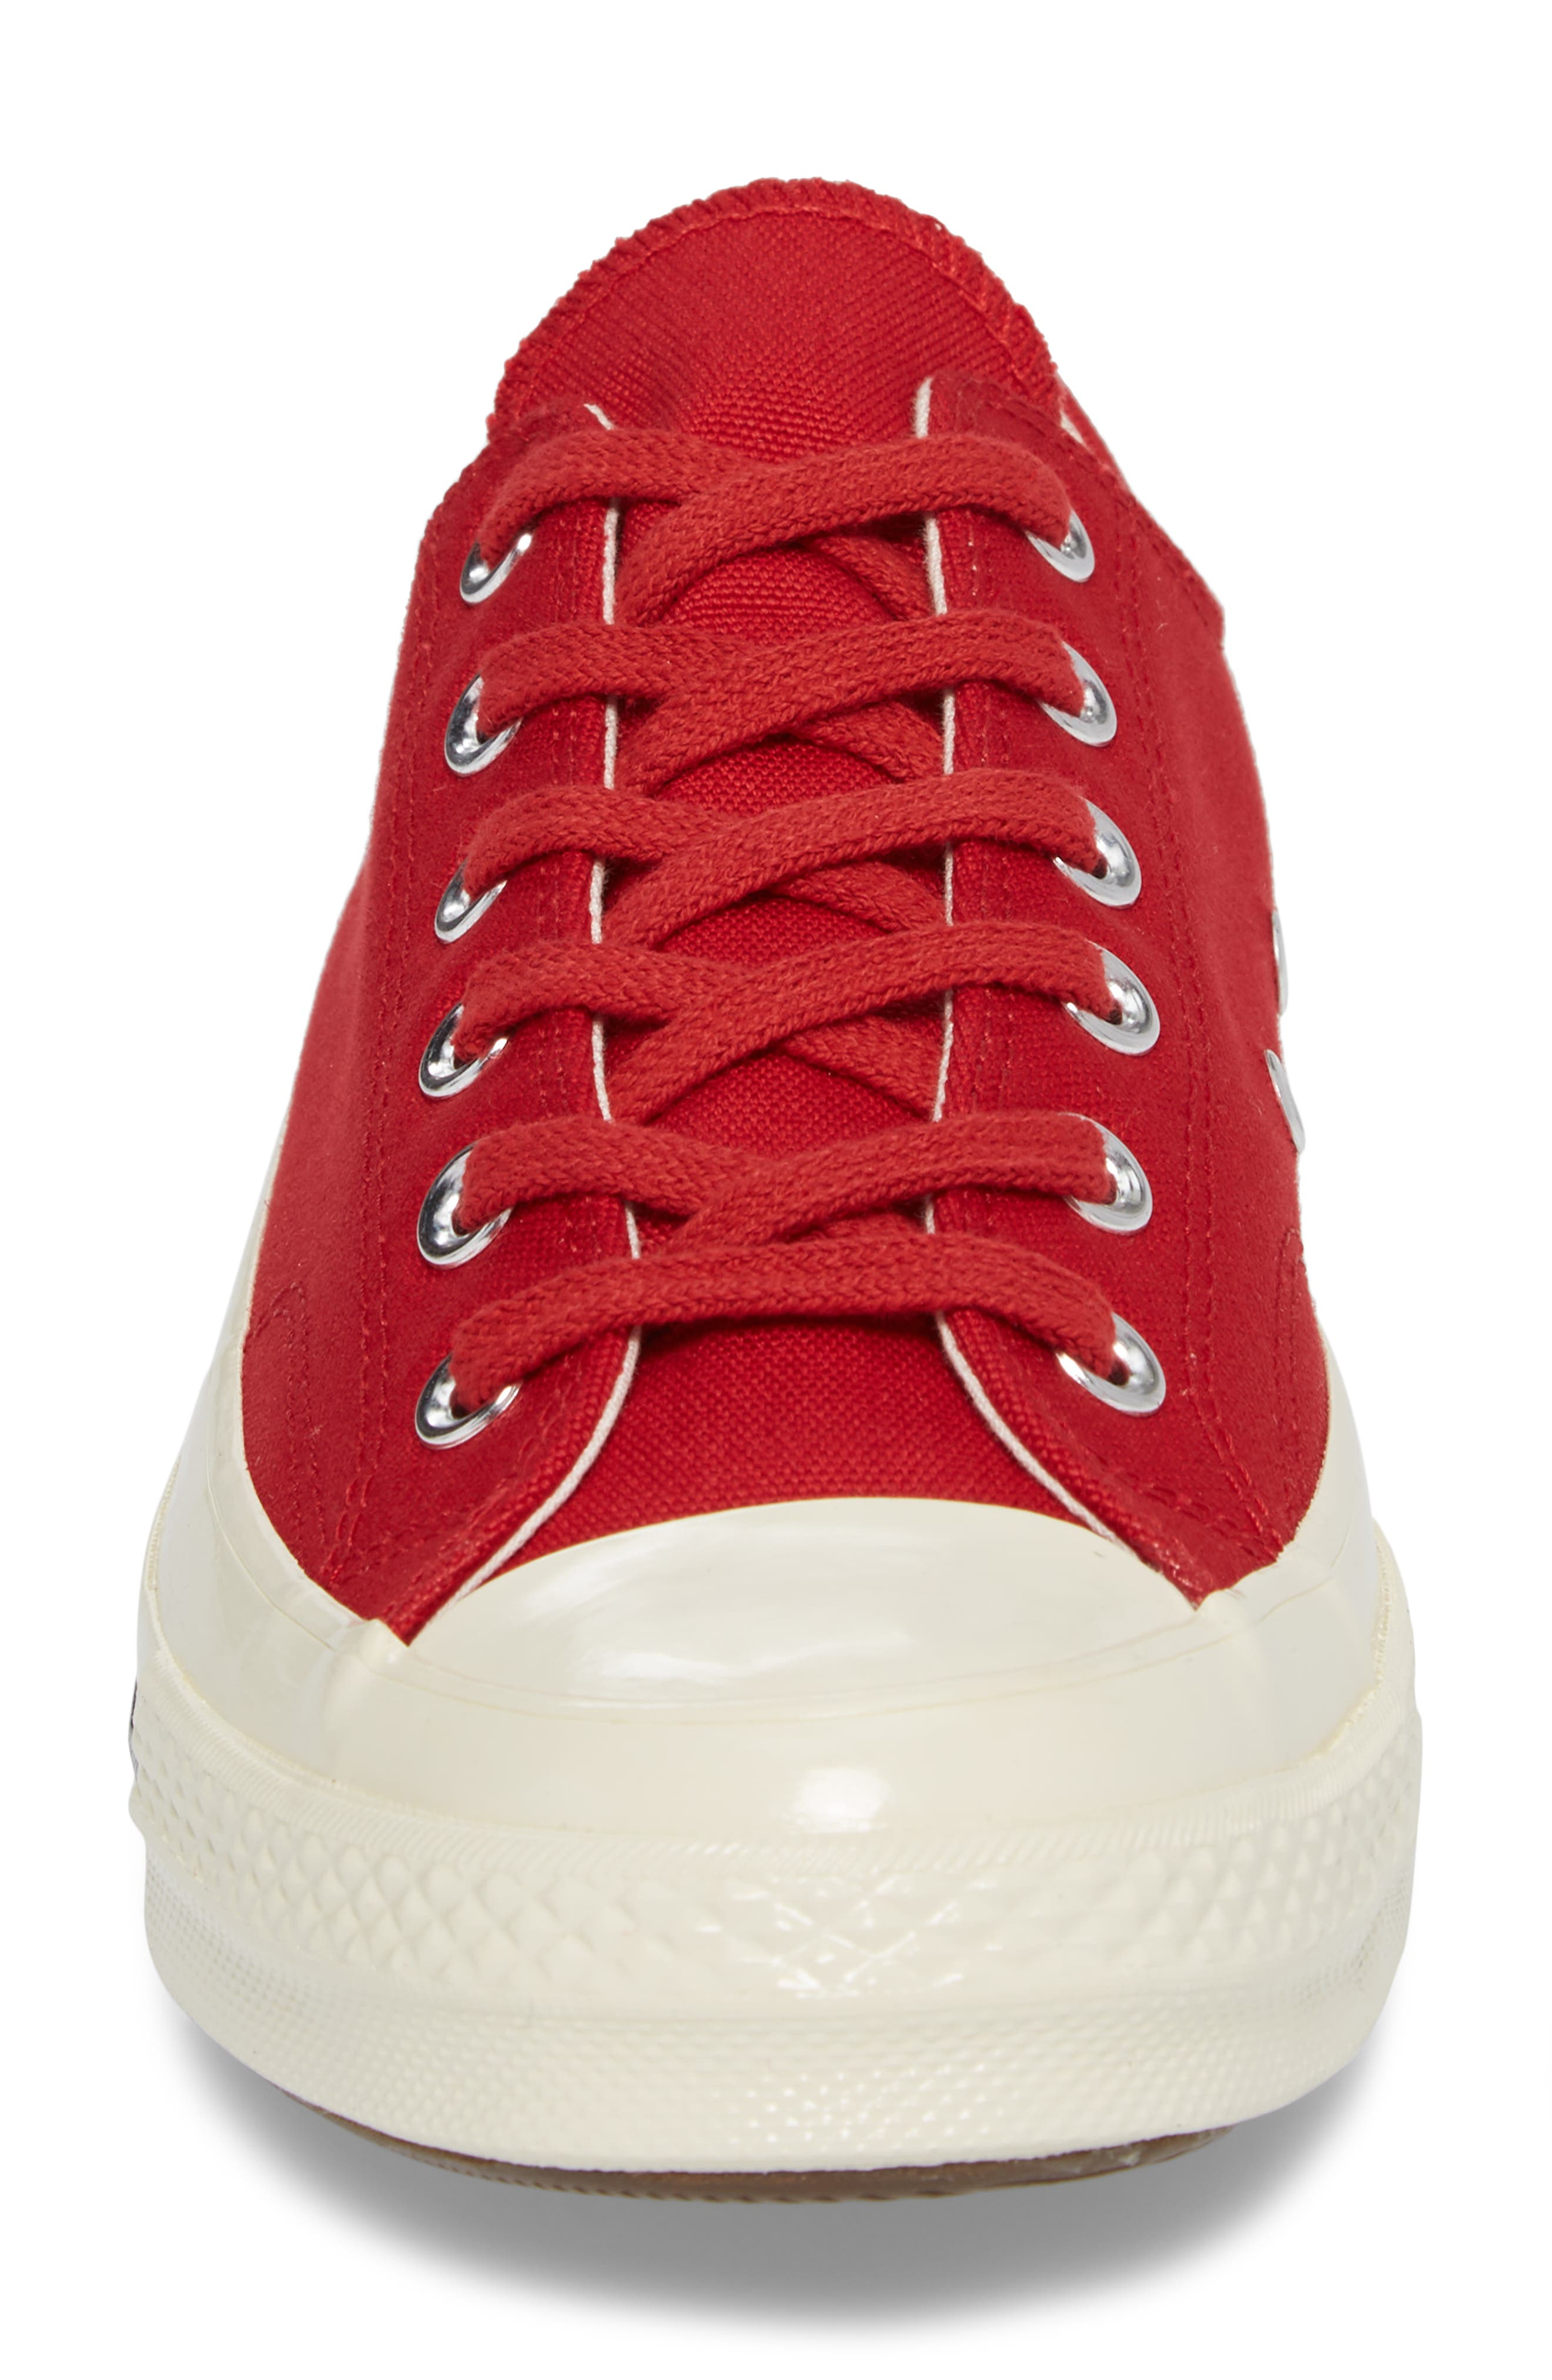 Chuck Taylor<sup>®</sup> All Star<sup>®</sup> '70s Heritage Low Top Sneaker,                             Alternate thumbnail 4, color,                             Gym Red